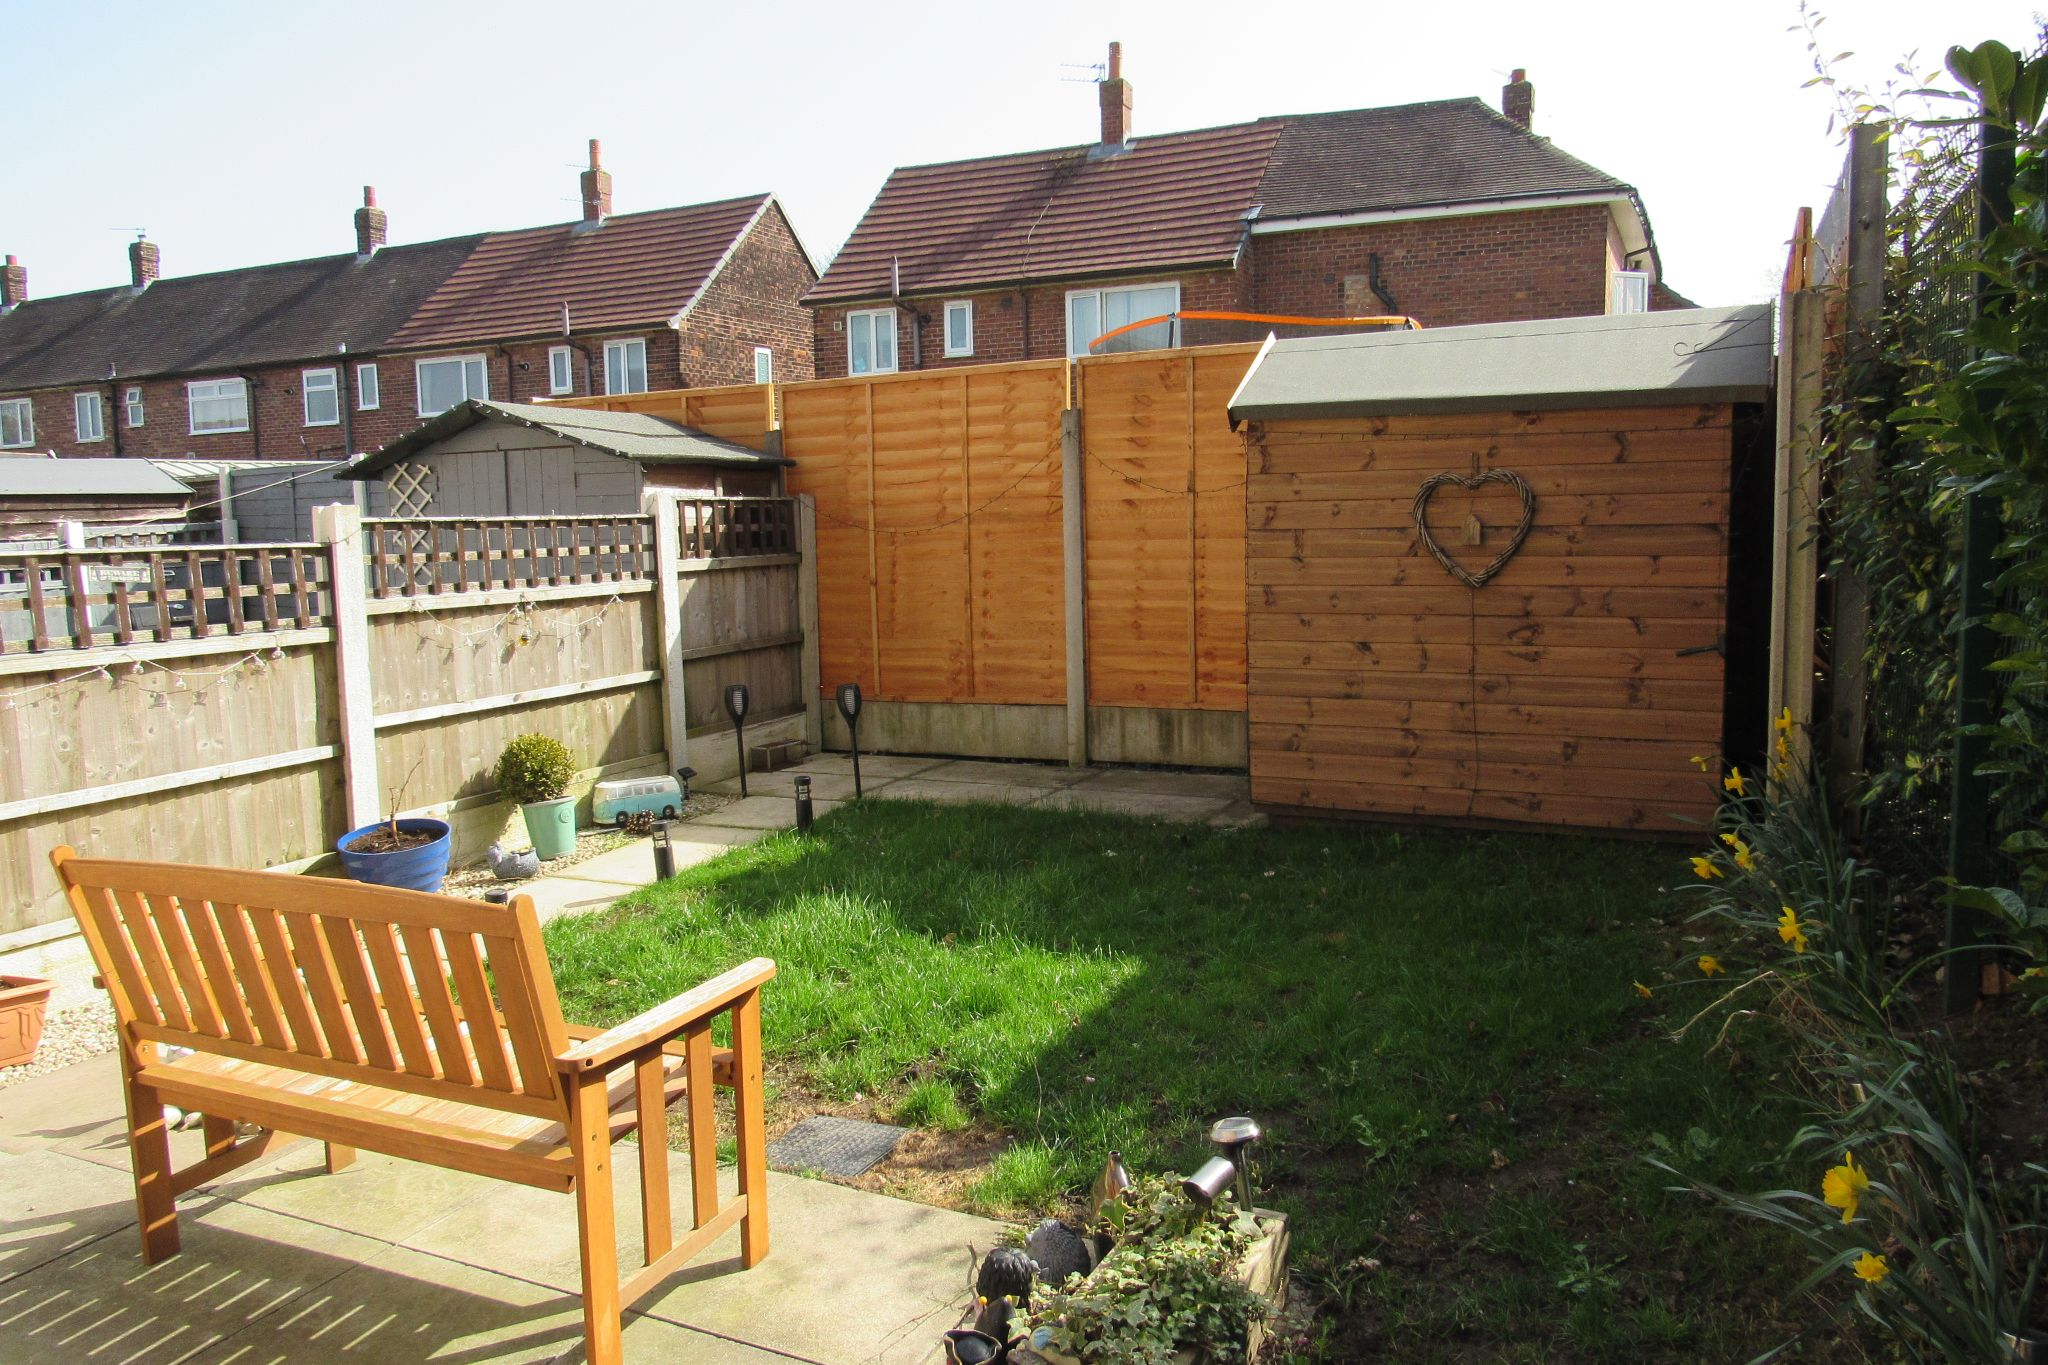 2 bedroom semi-detached house SSTC in Manchester - Photograph 16.